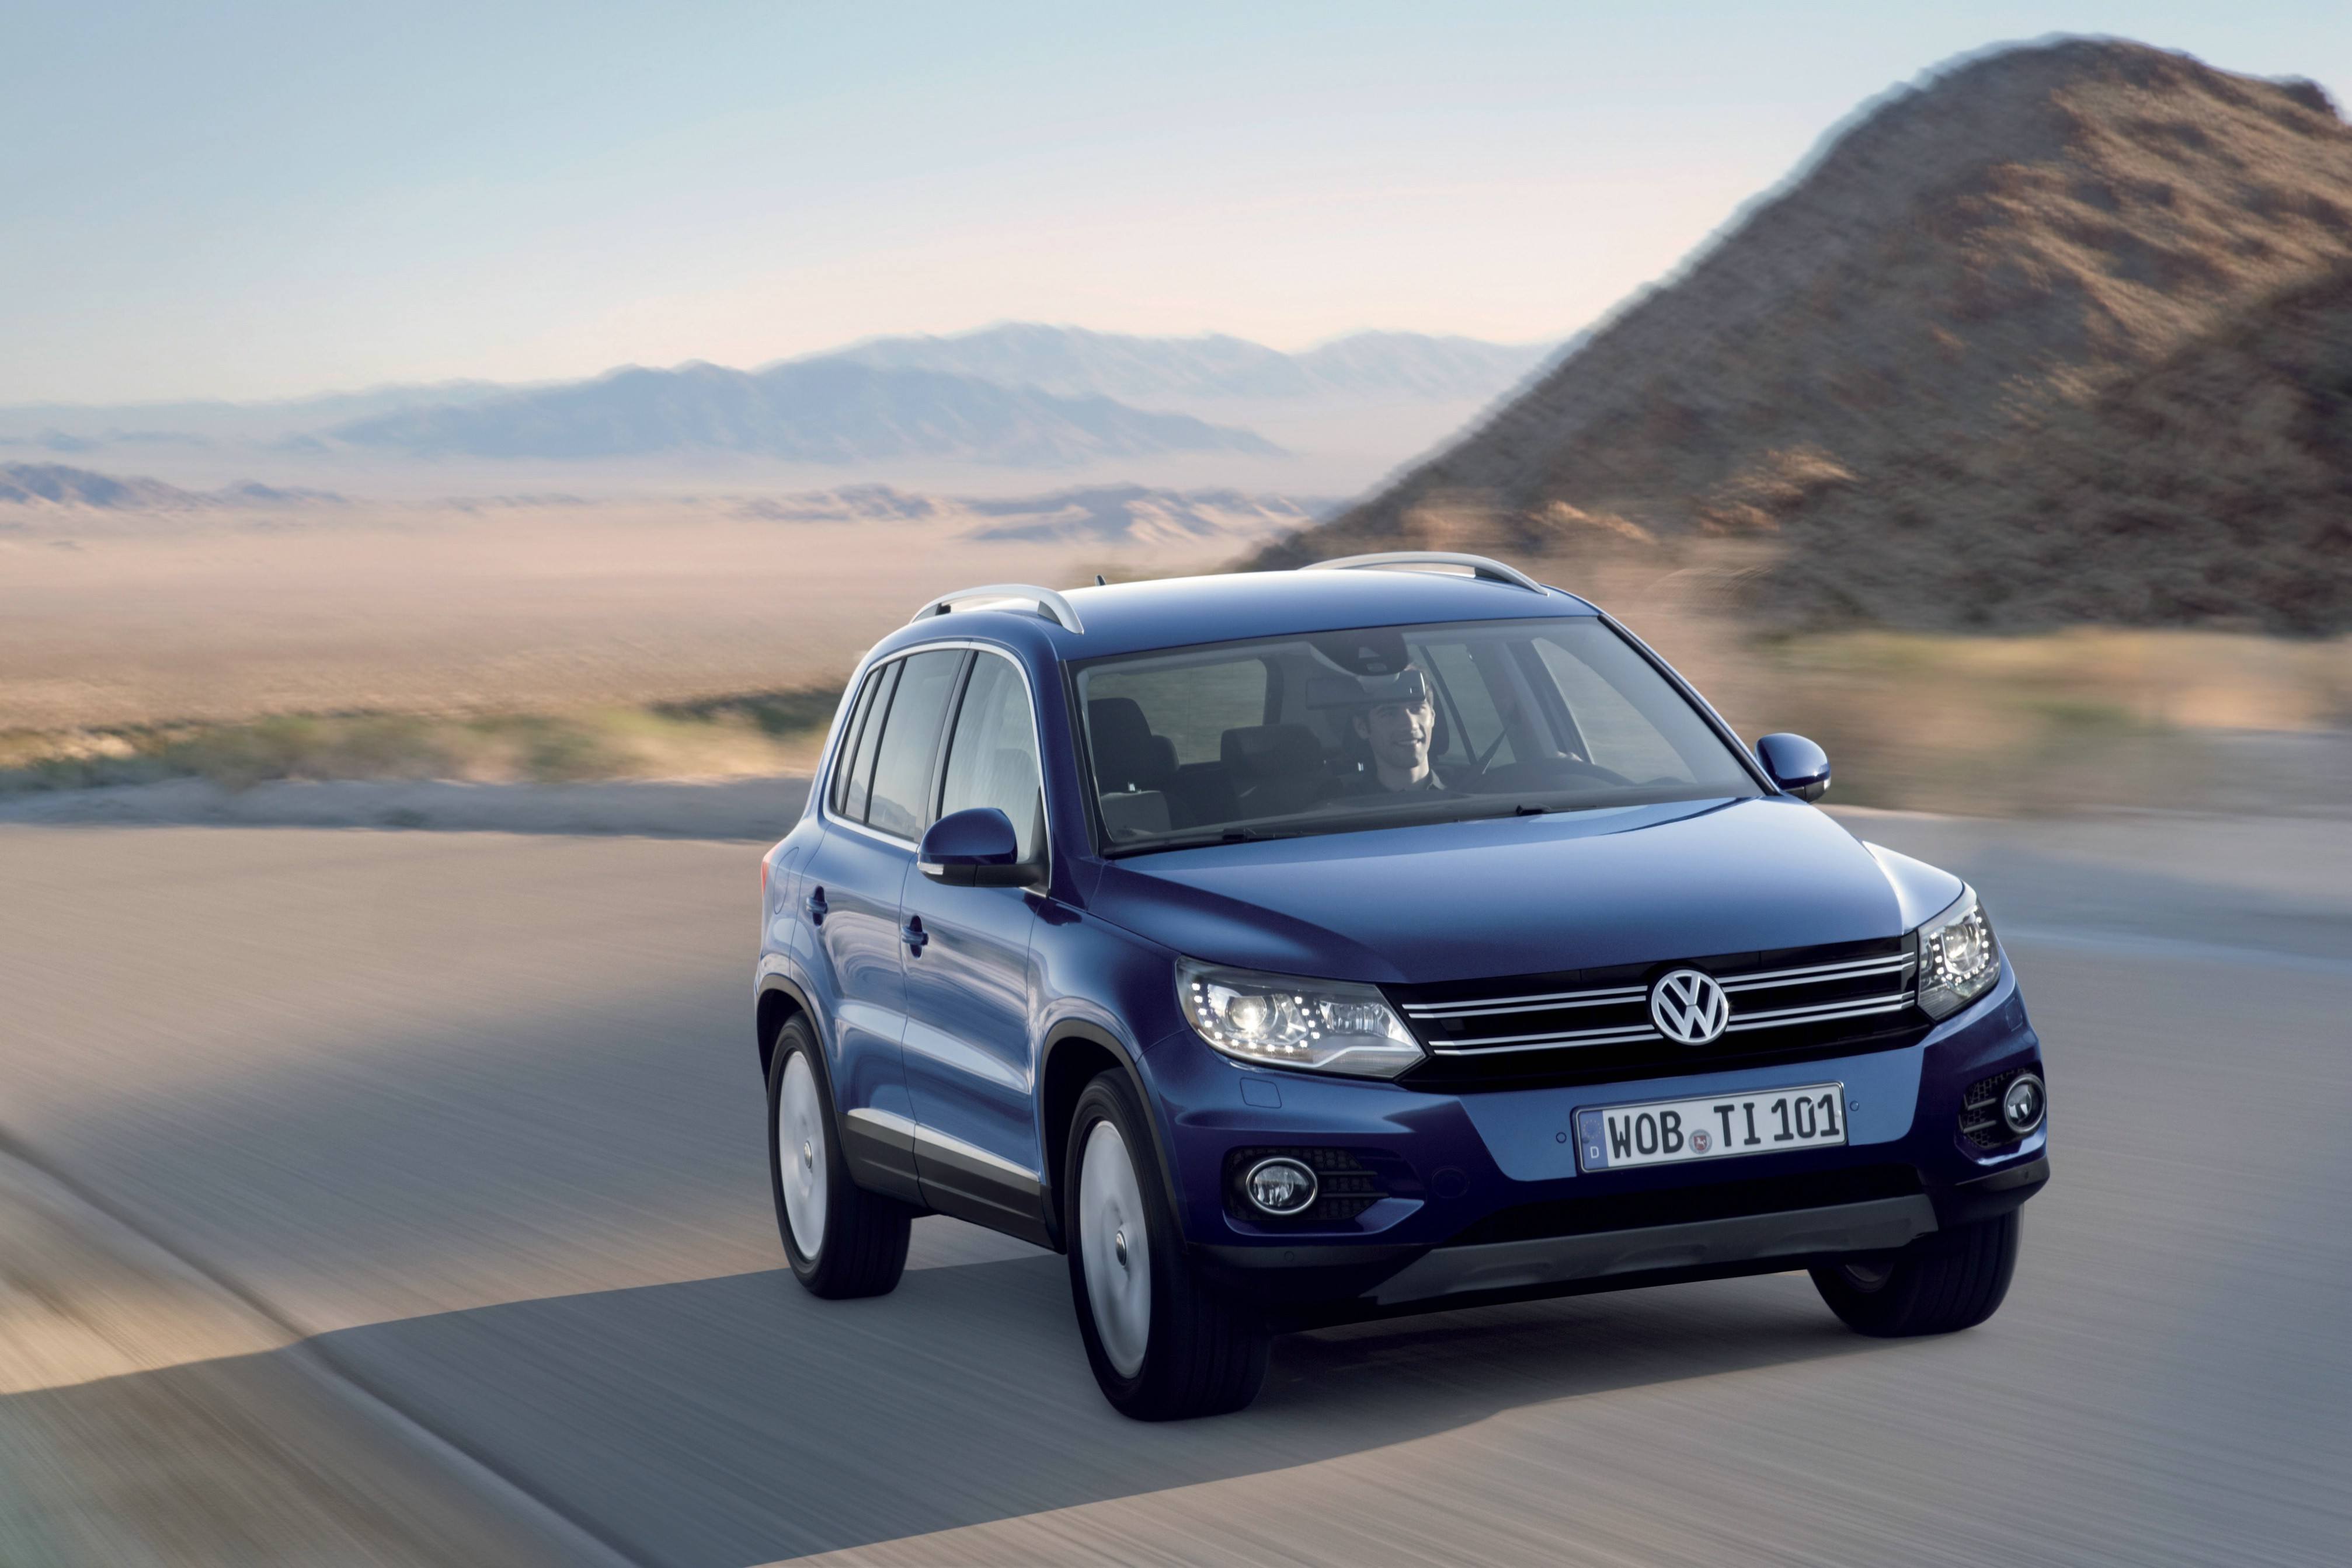 packages but vehicle vw road blog aka on s and serious toy mistake in that a autoform off ish suv no wrapped small sized is both make tiguan happens volkswagen nicely come be just this good to things capable rather